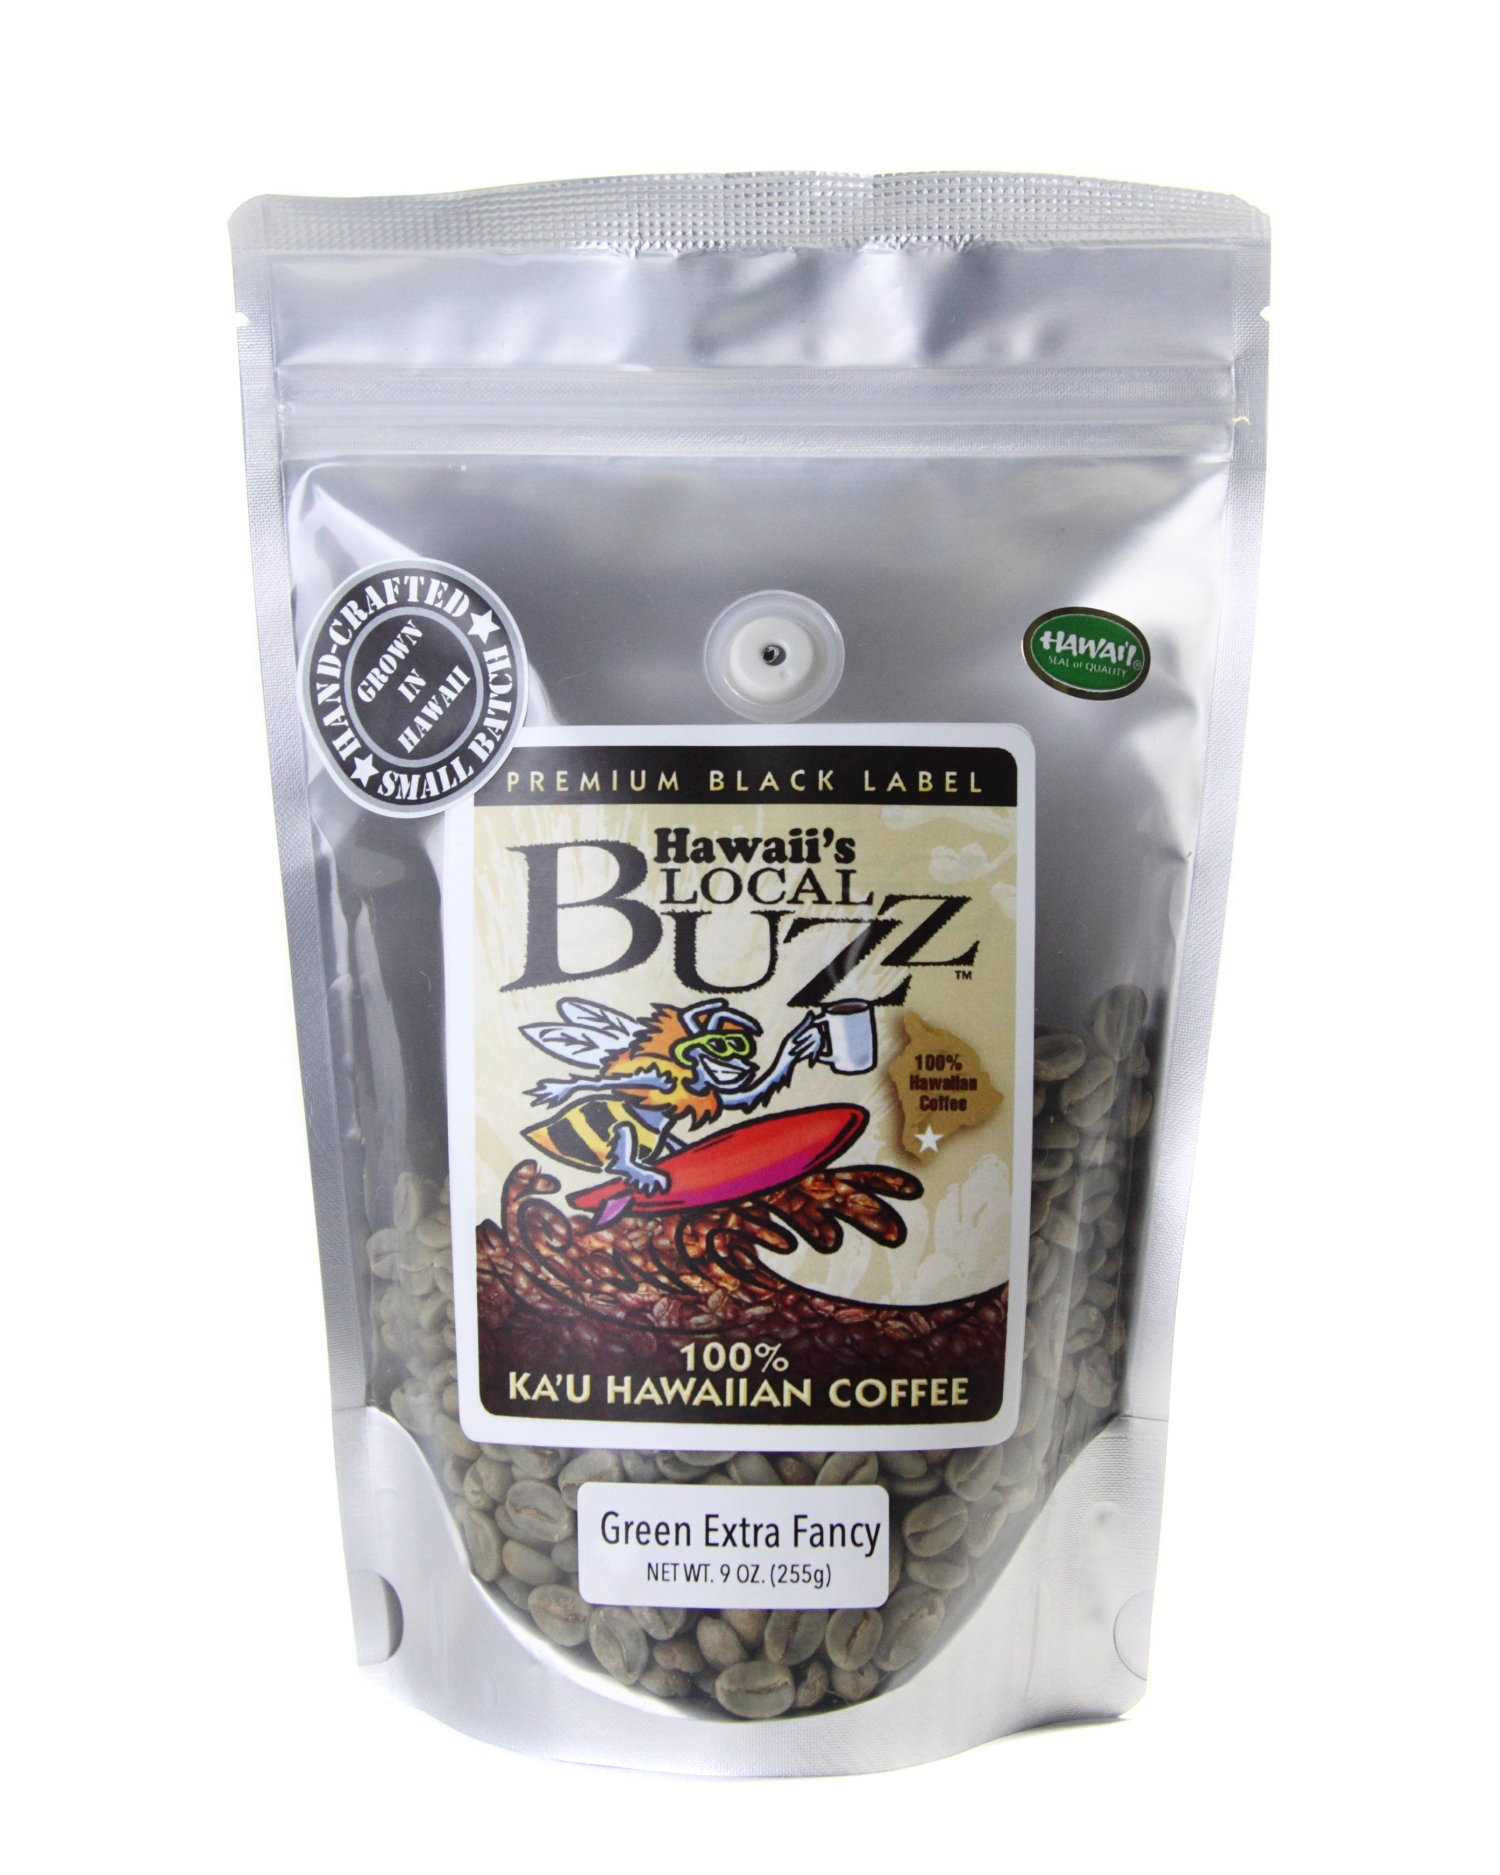 Hawaii's Local Buzz Premium Black Label Extra Fancy, Green (Unroasted) Beans, 9 Ounce by Hawaii's Local Buzz